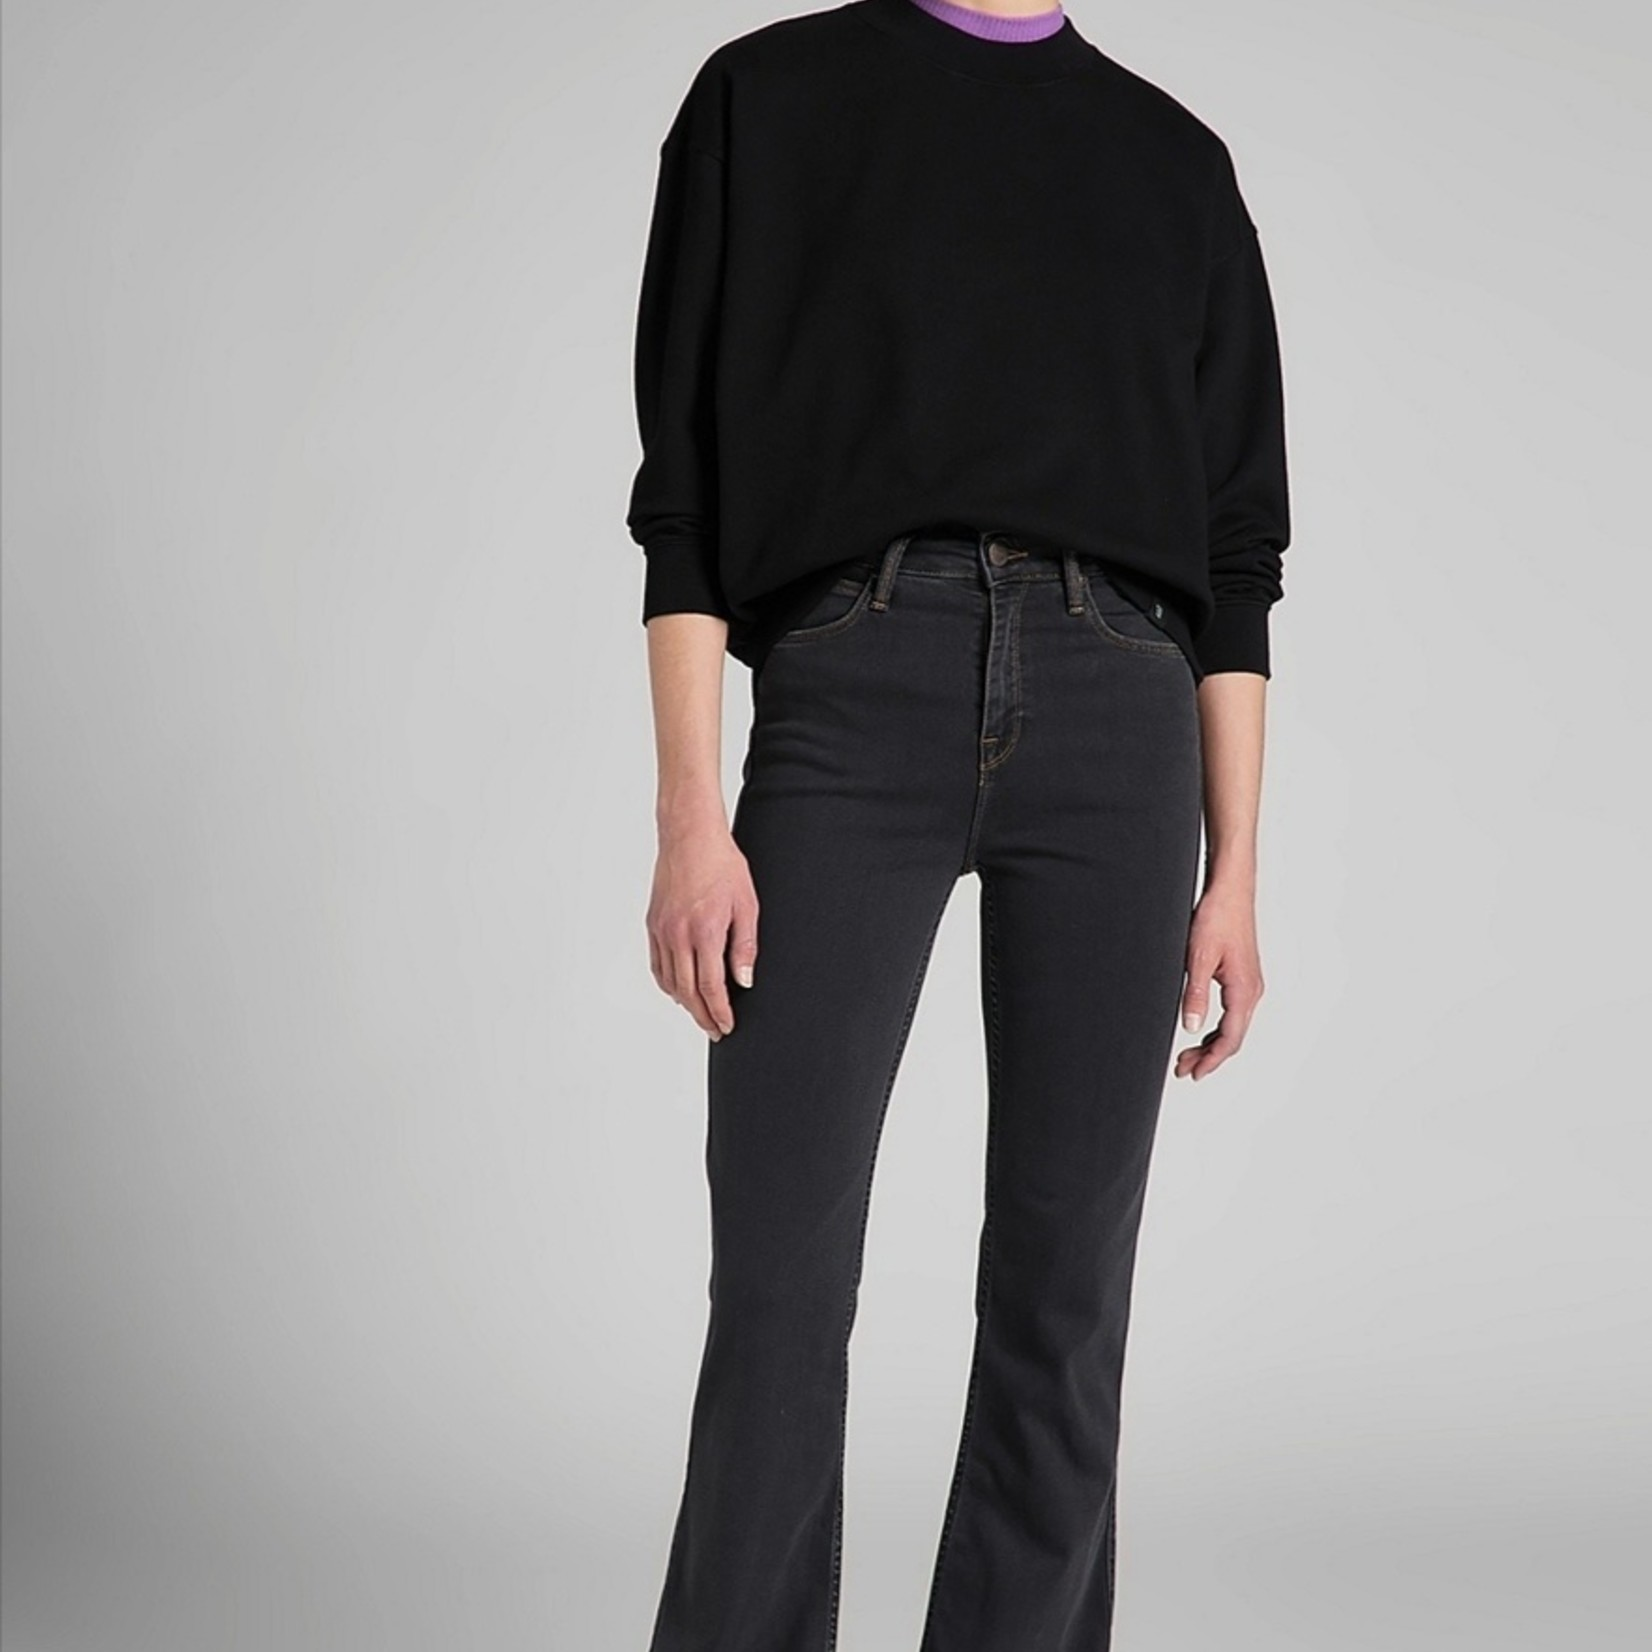 LEE WESTERN SWS, sweater relaxed fit